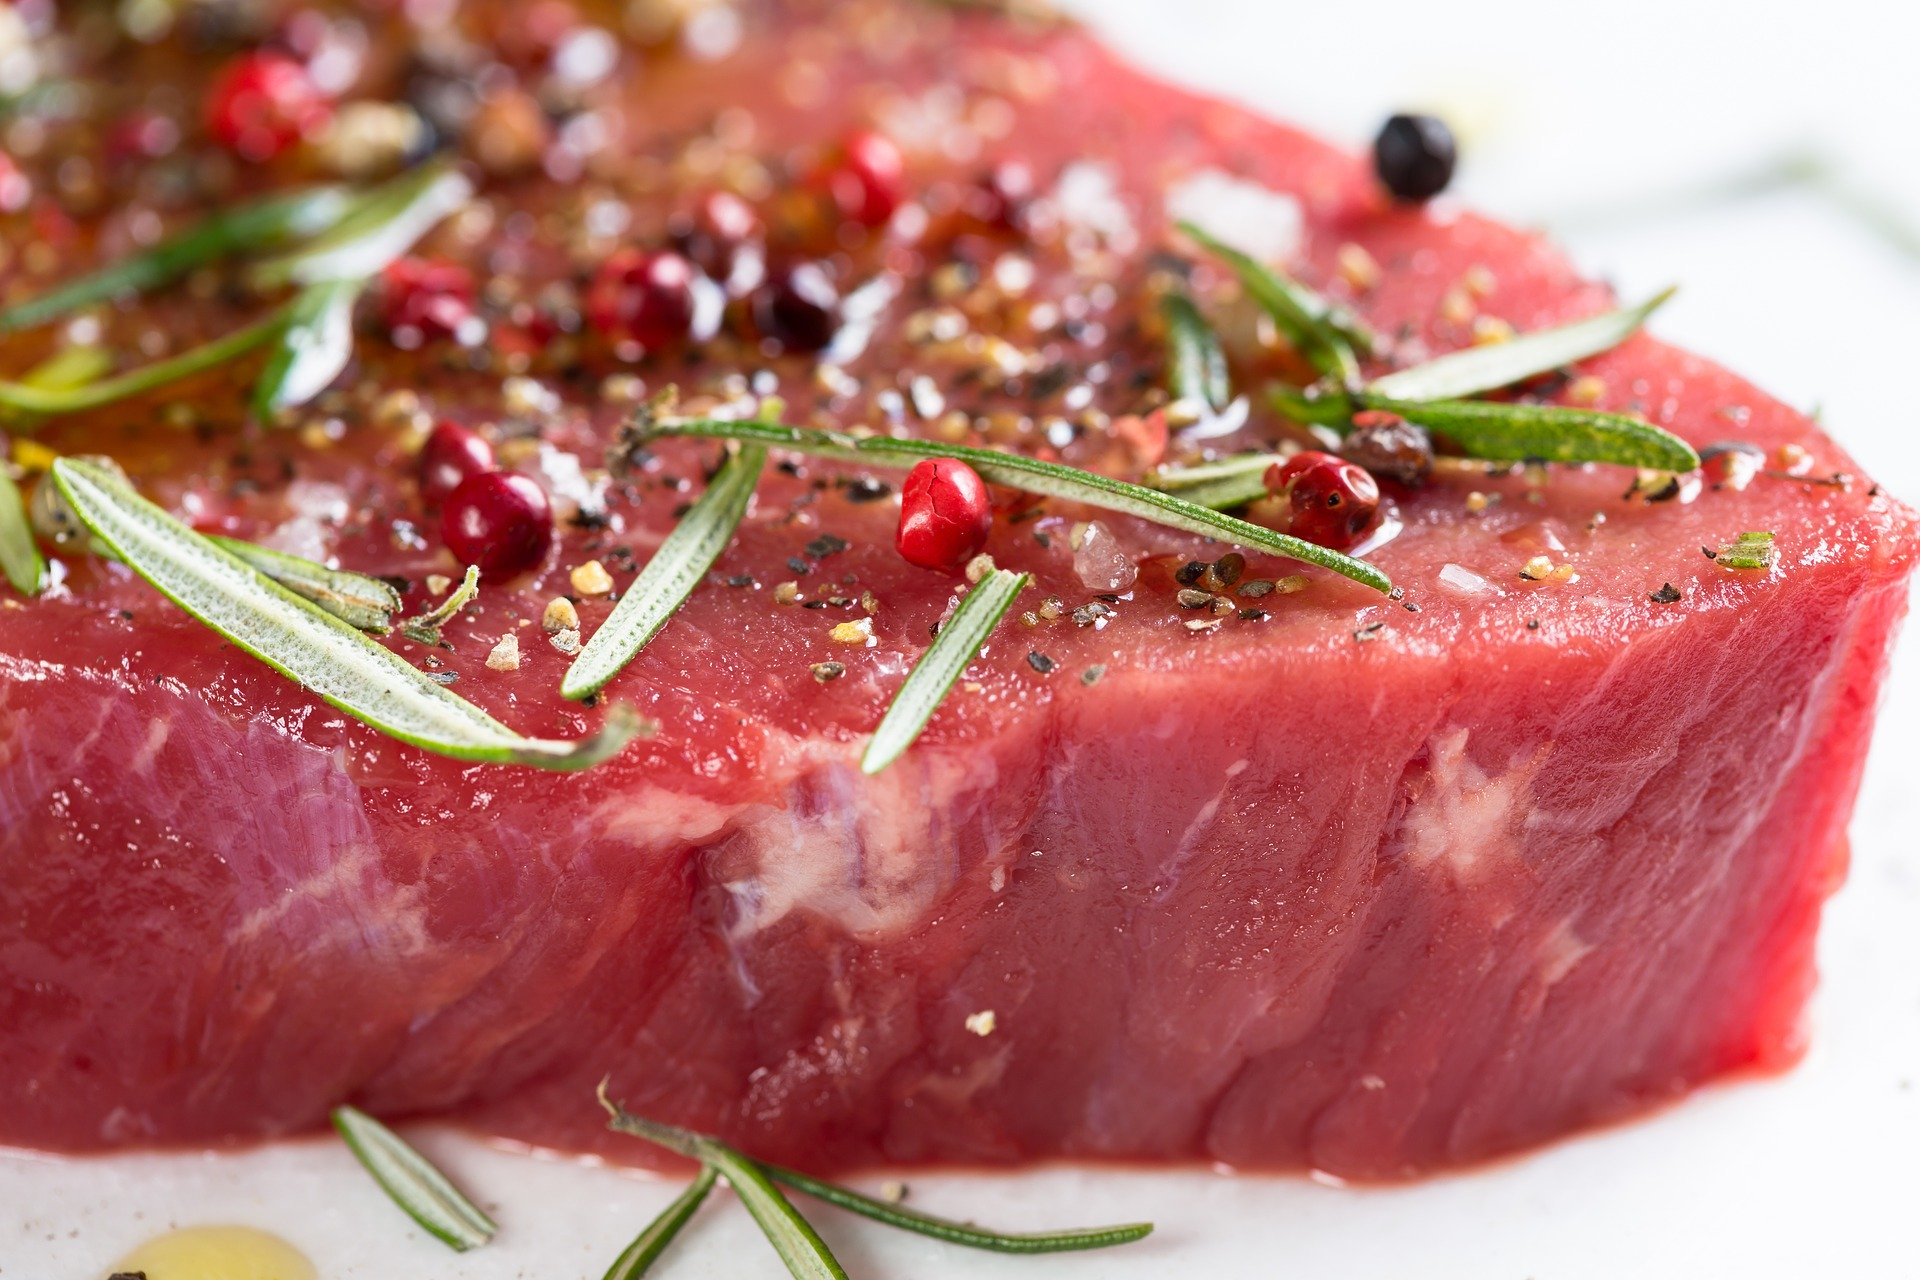 Don't Overcook Your Meats and Veggies – Keep Nutrients in Tact